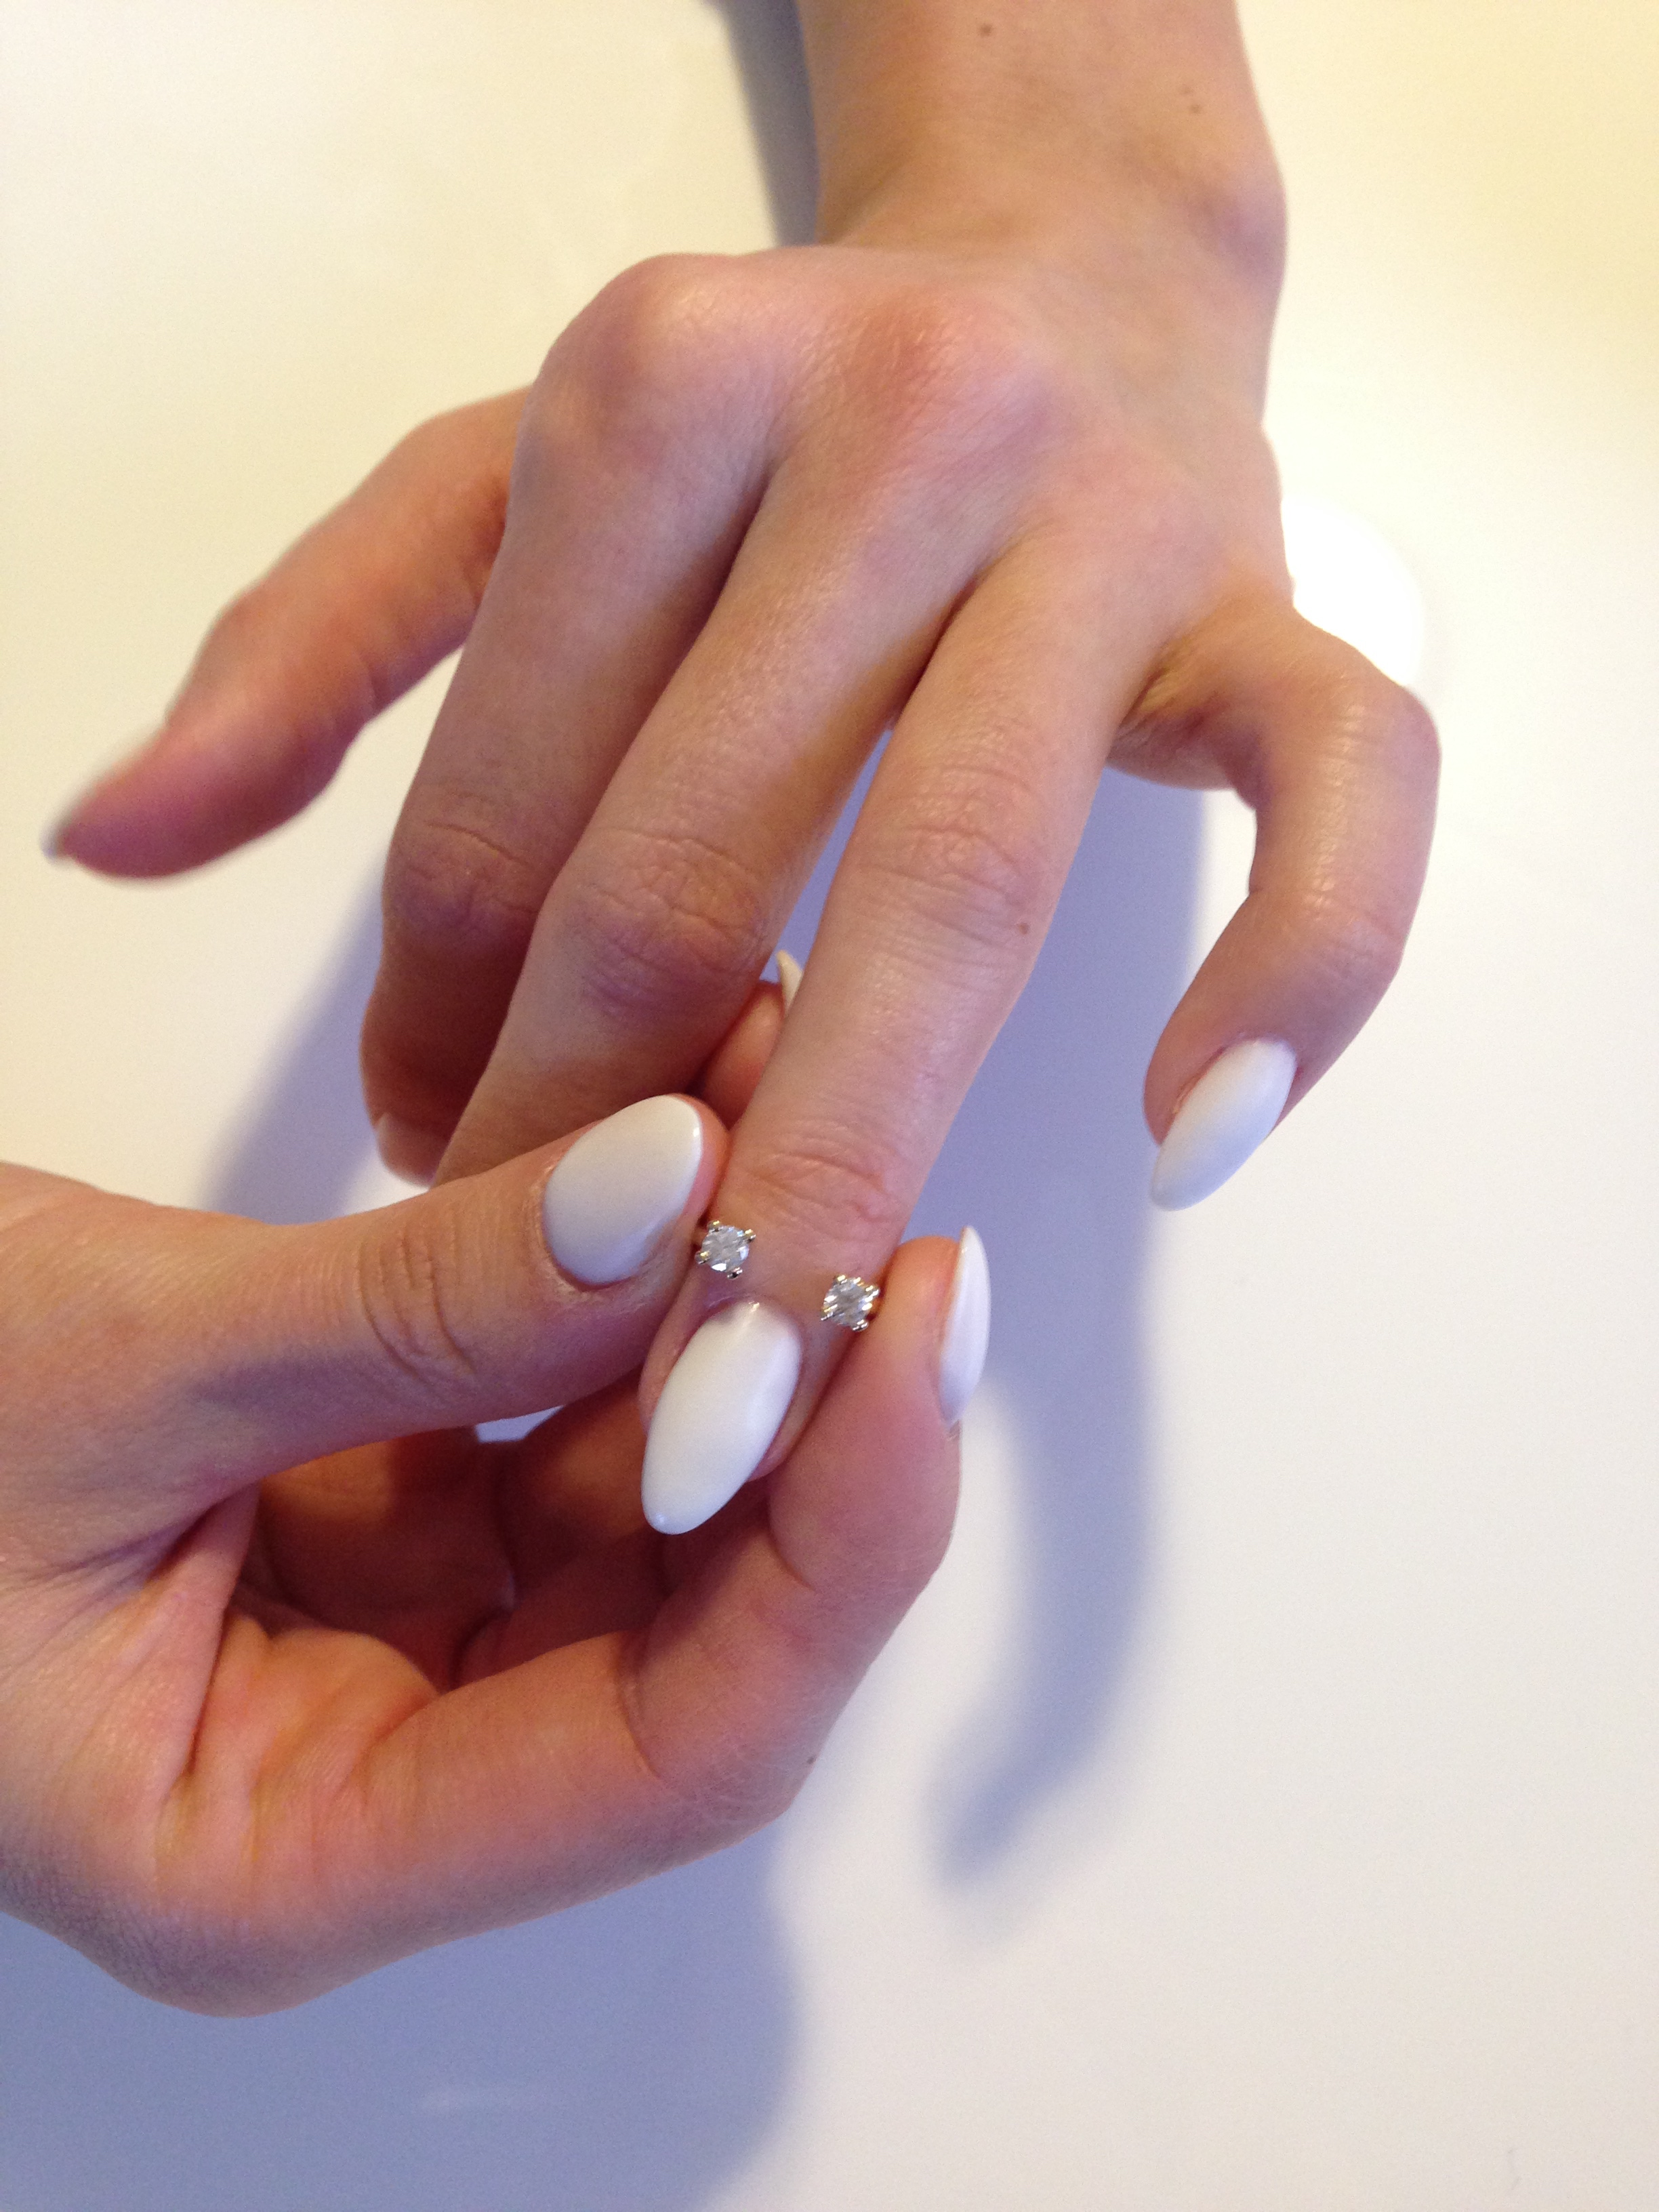 You should NOT be able to insert the ring straight into the finger